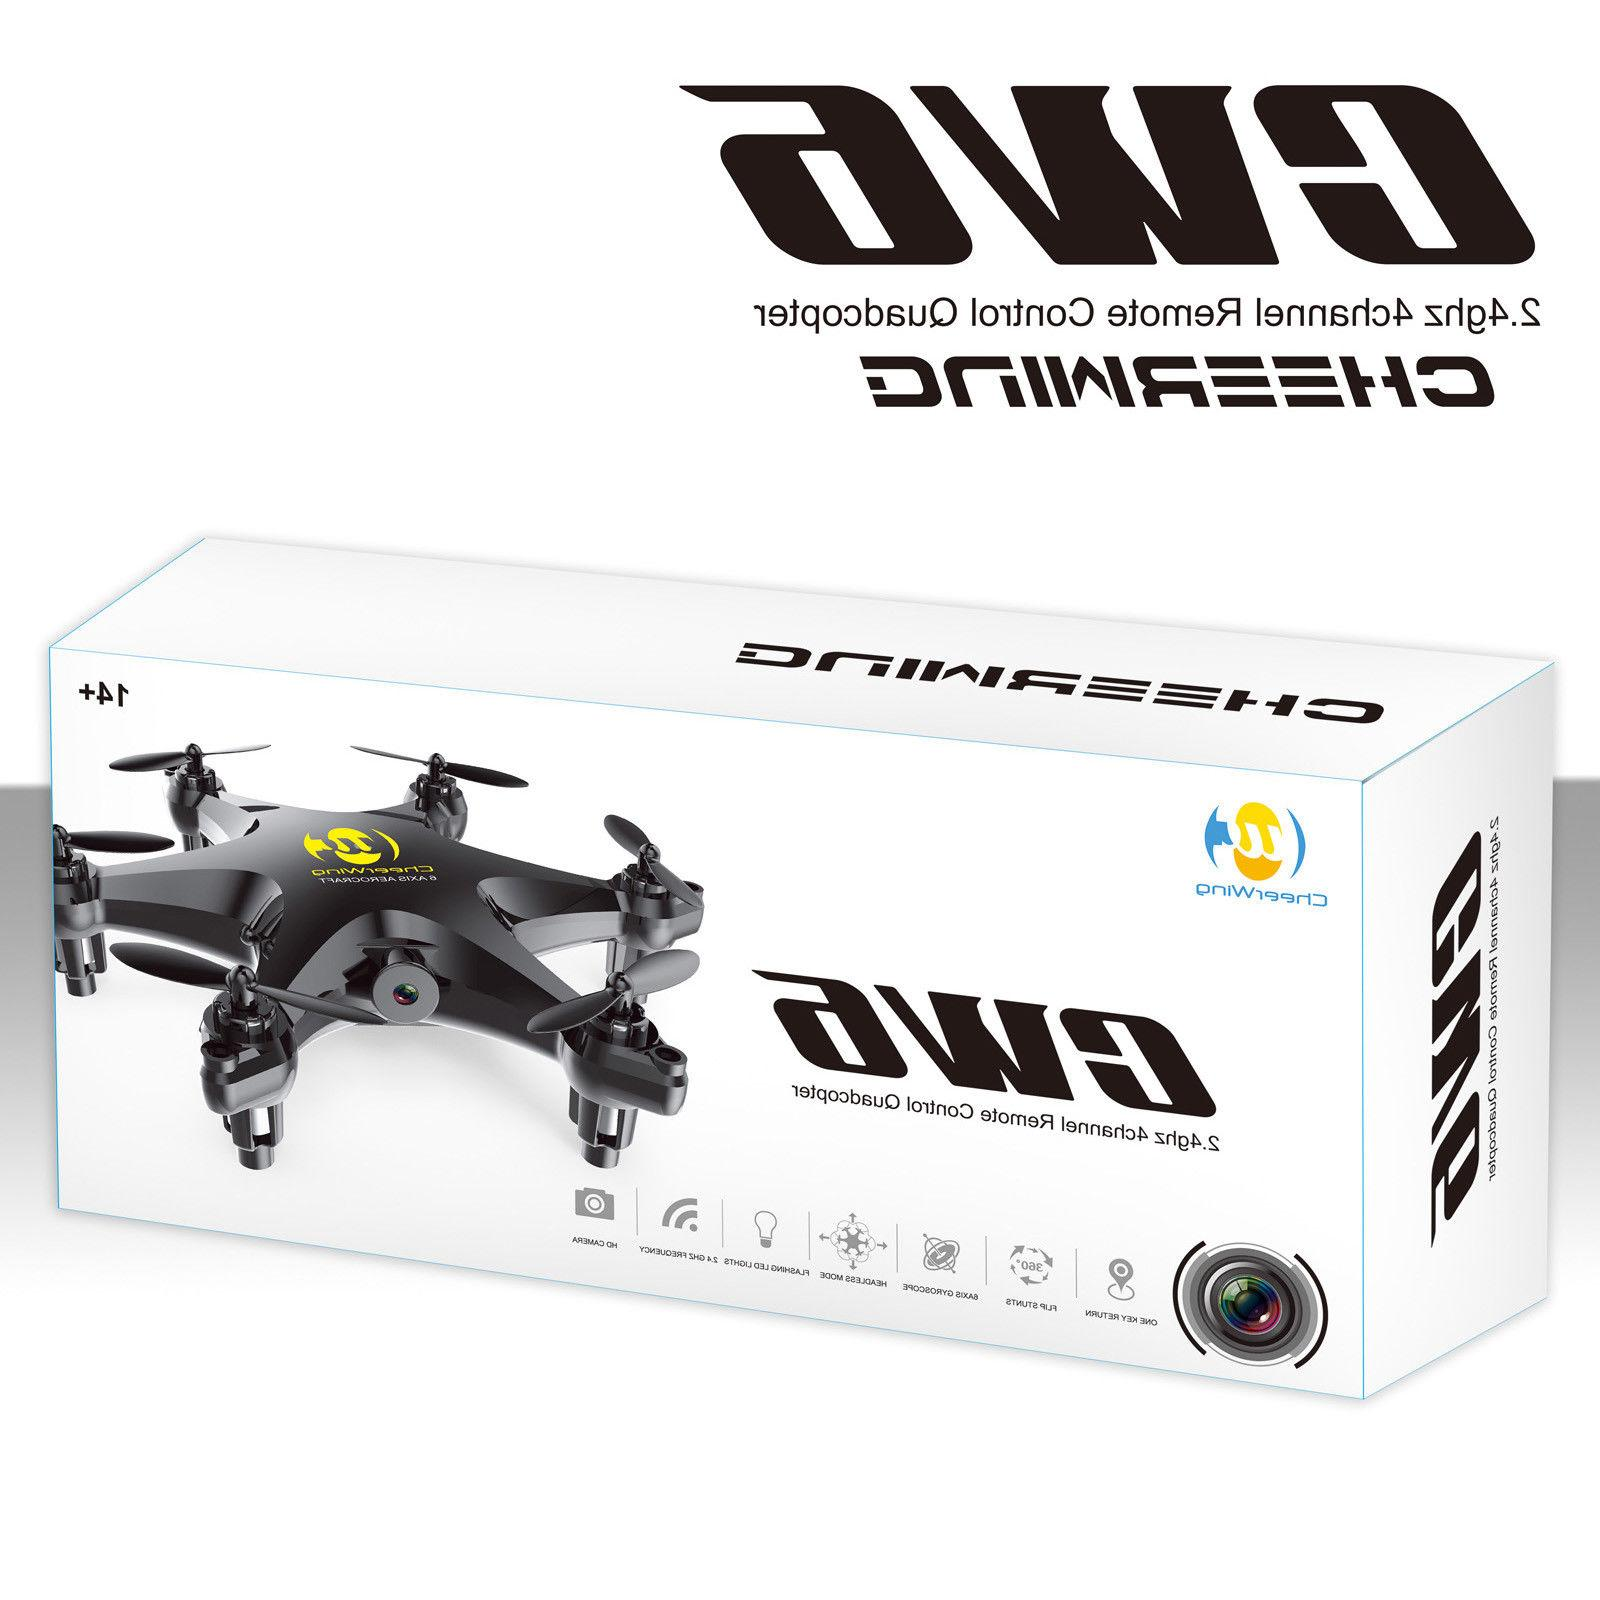 Cheerwing CW6 RC Drone w/2MP Camera